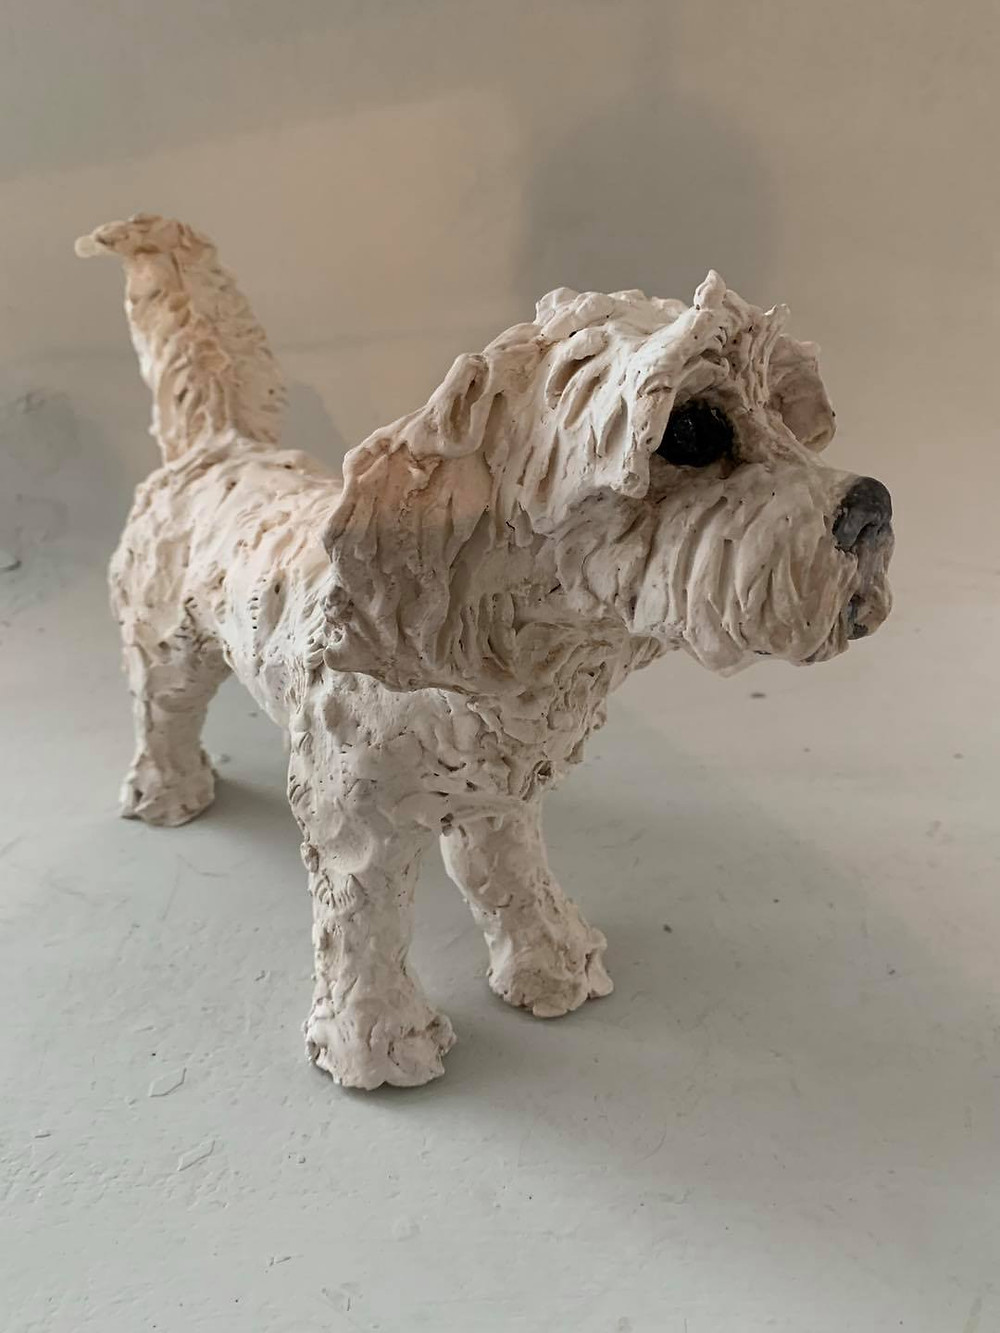 Photo shows a white ceramic dog